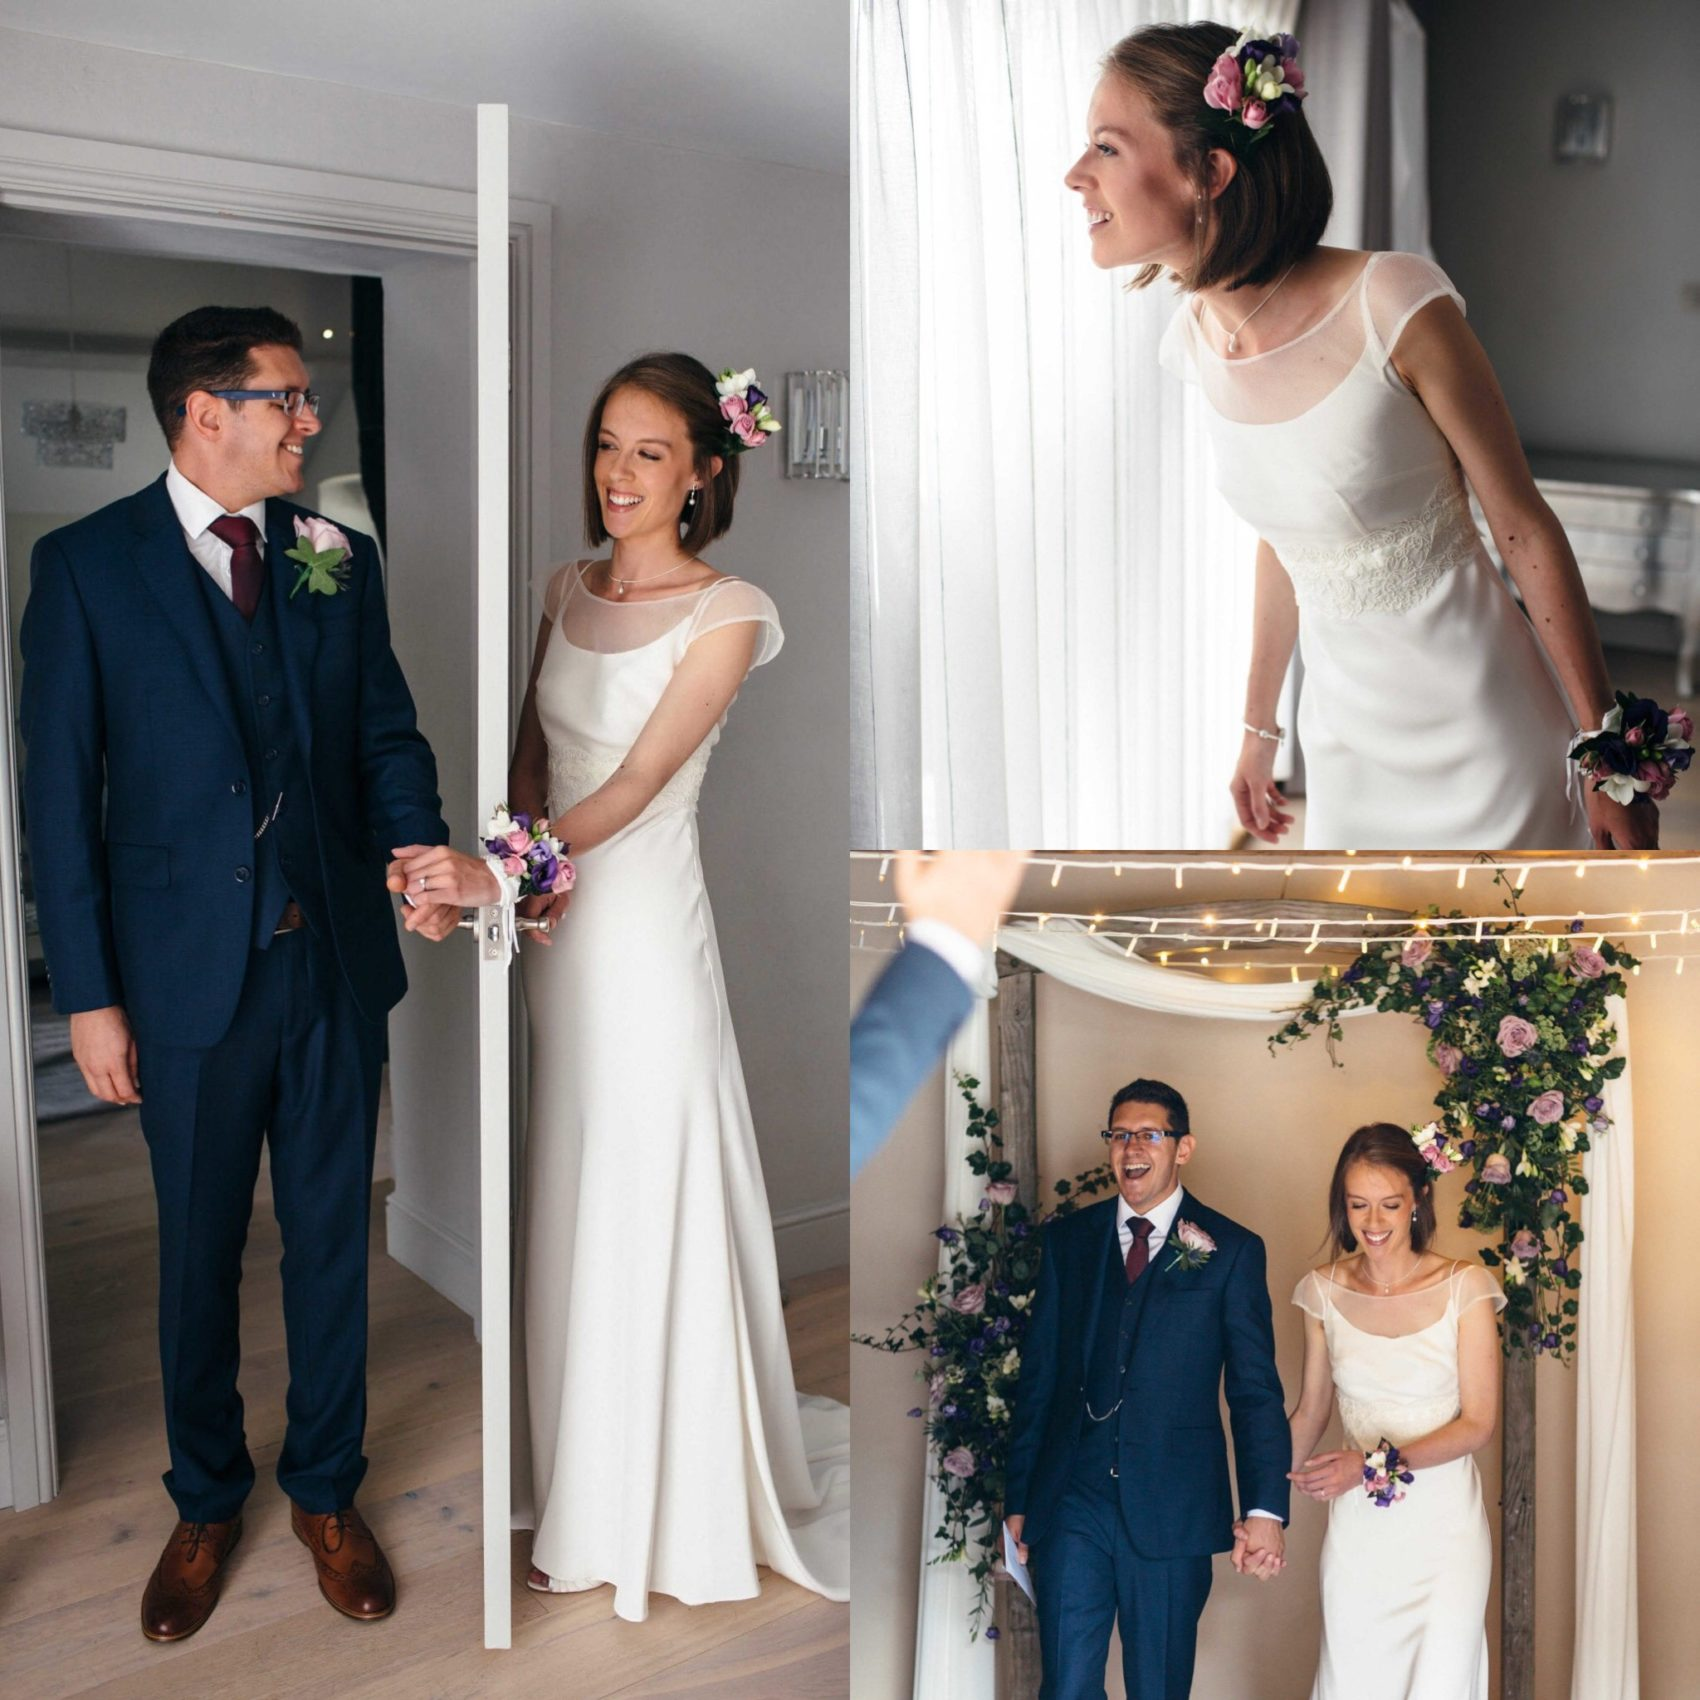 white wedding, getting ready, first look, bright, flowers, happy, lively, wedding, light, ever after, chic, lower grenofen, clean, sharp, bride & Groom